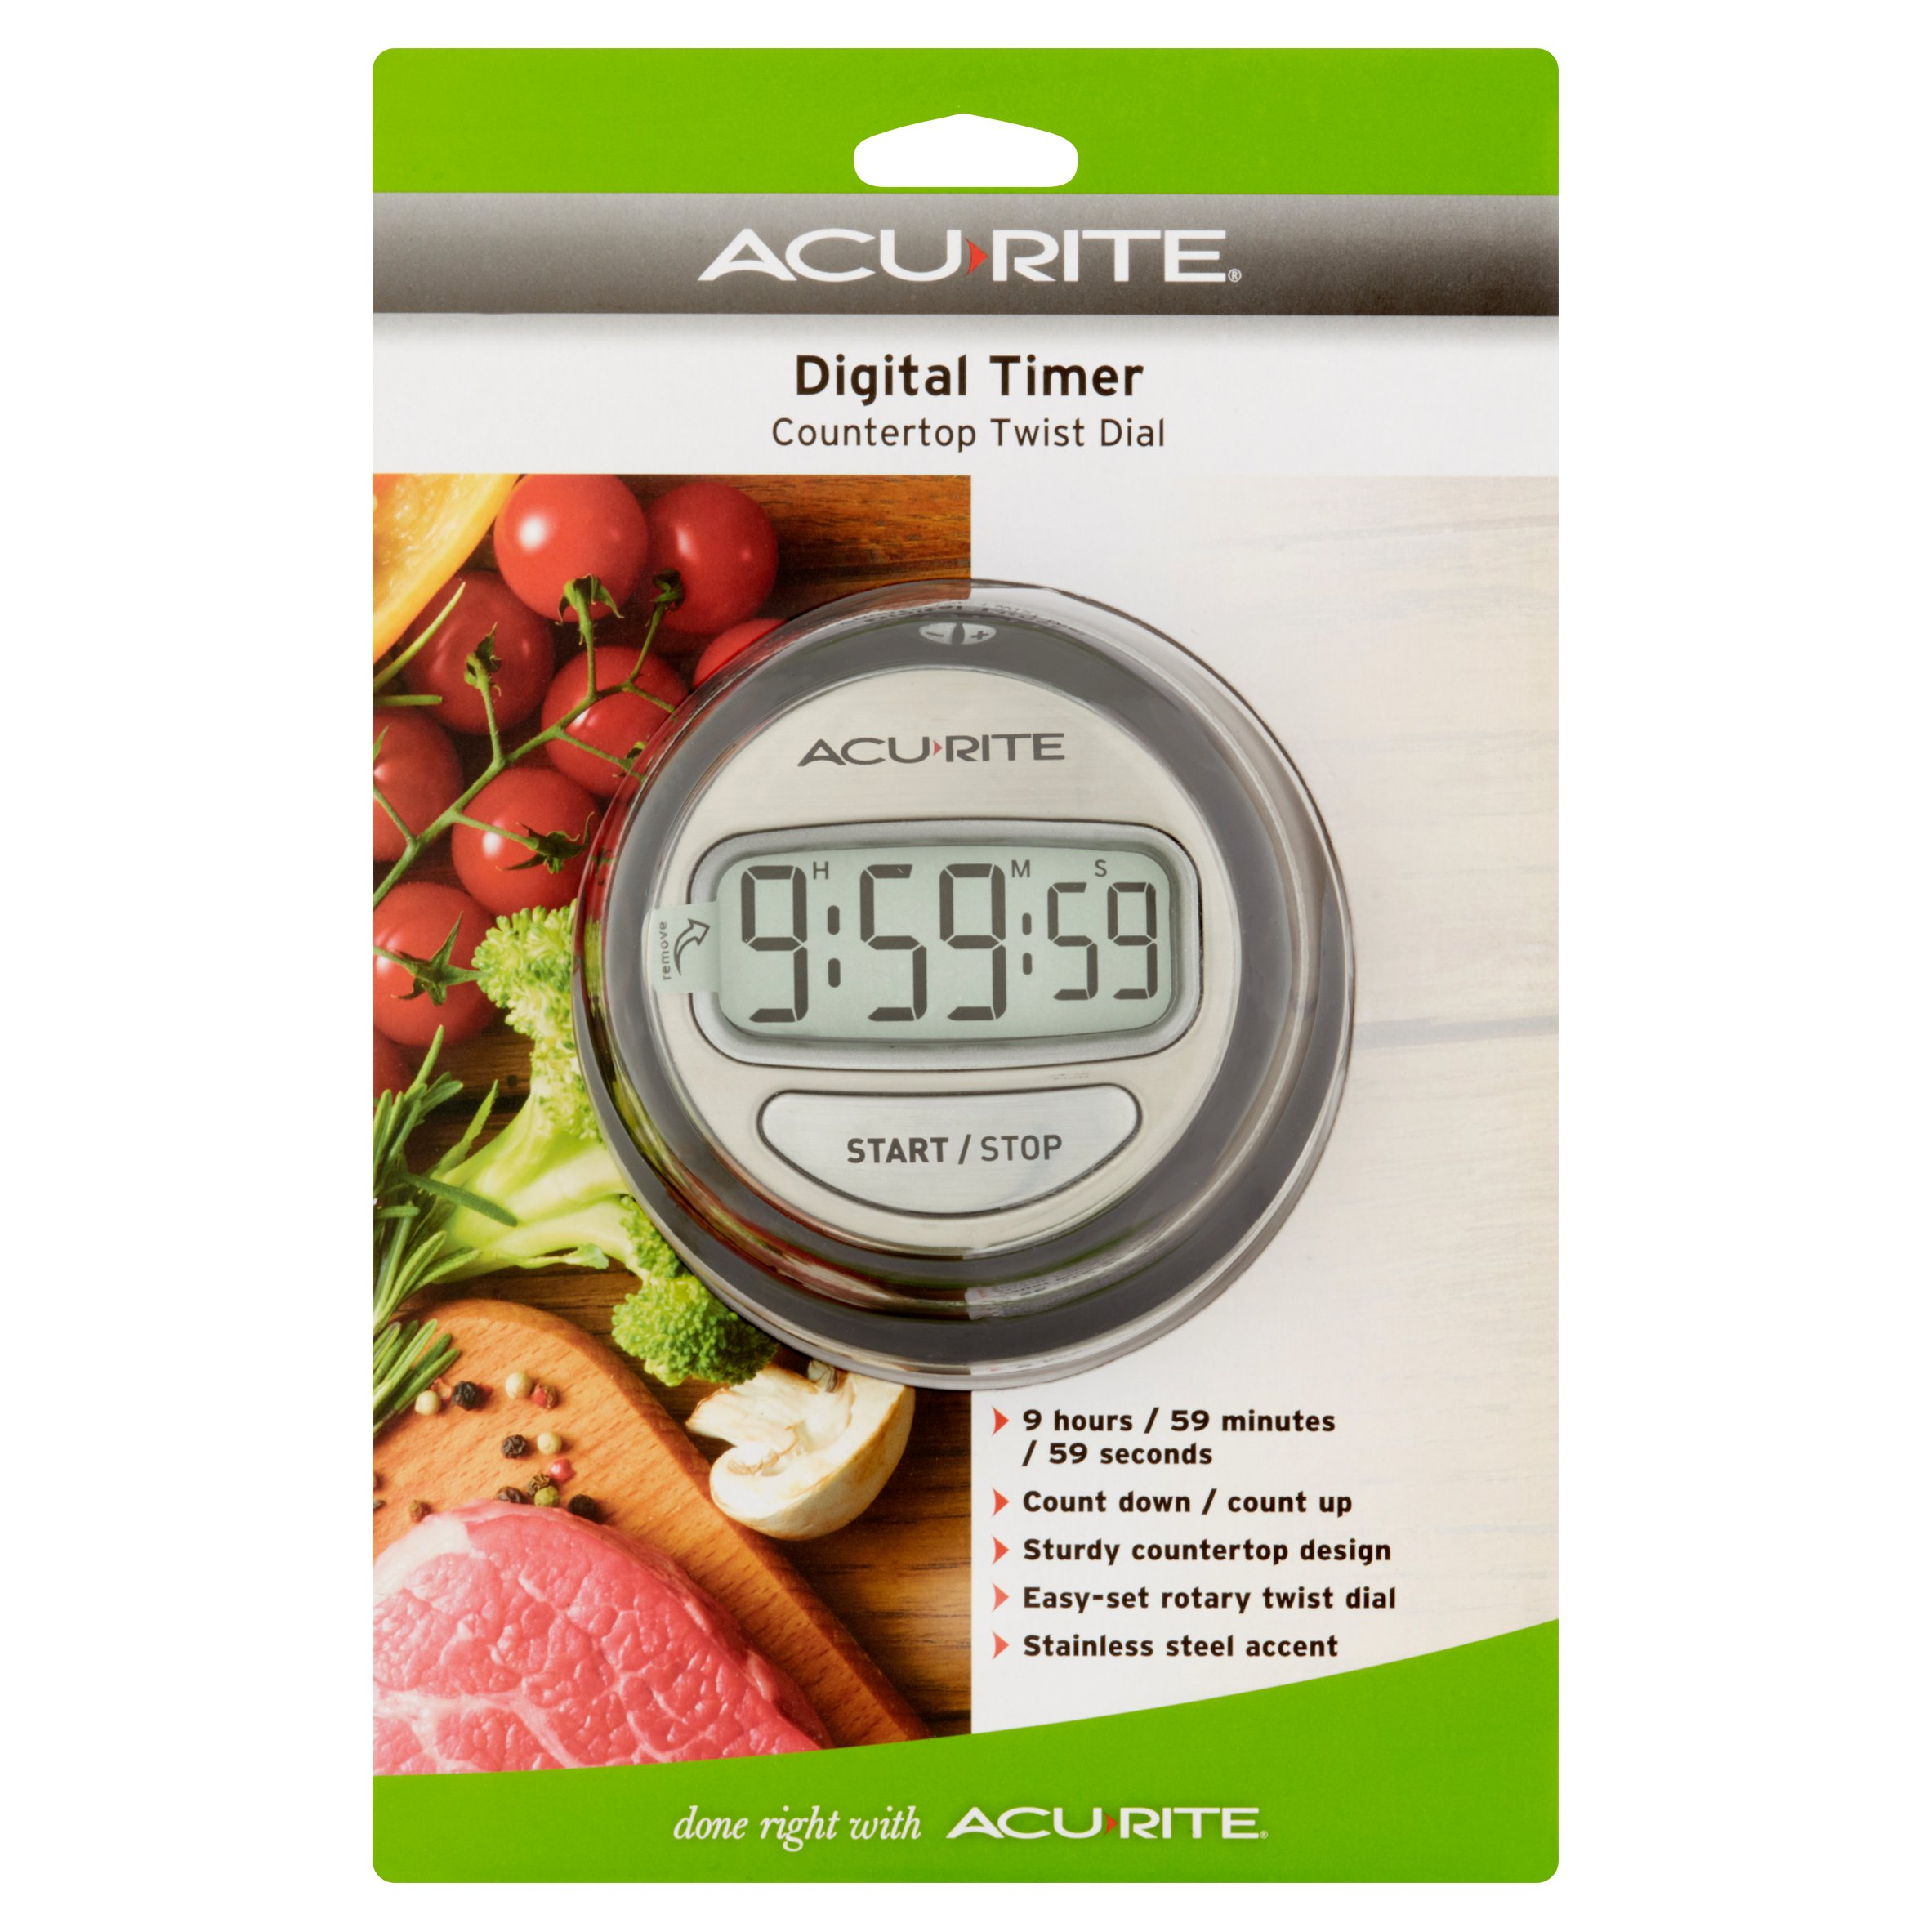 Acu Rite Countertop Twist Dial Digital Timer by Chaney Instrument Co.